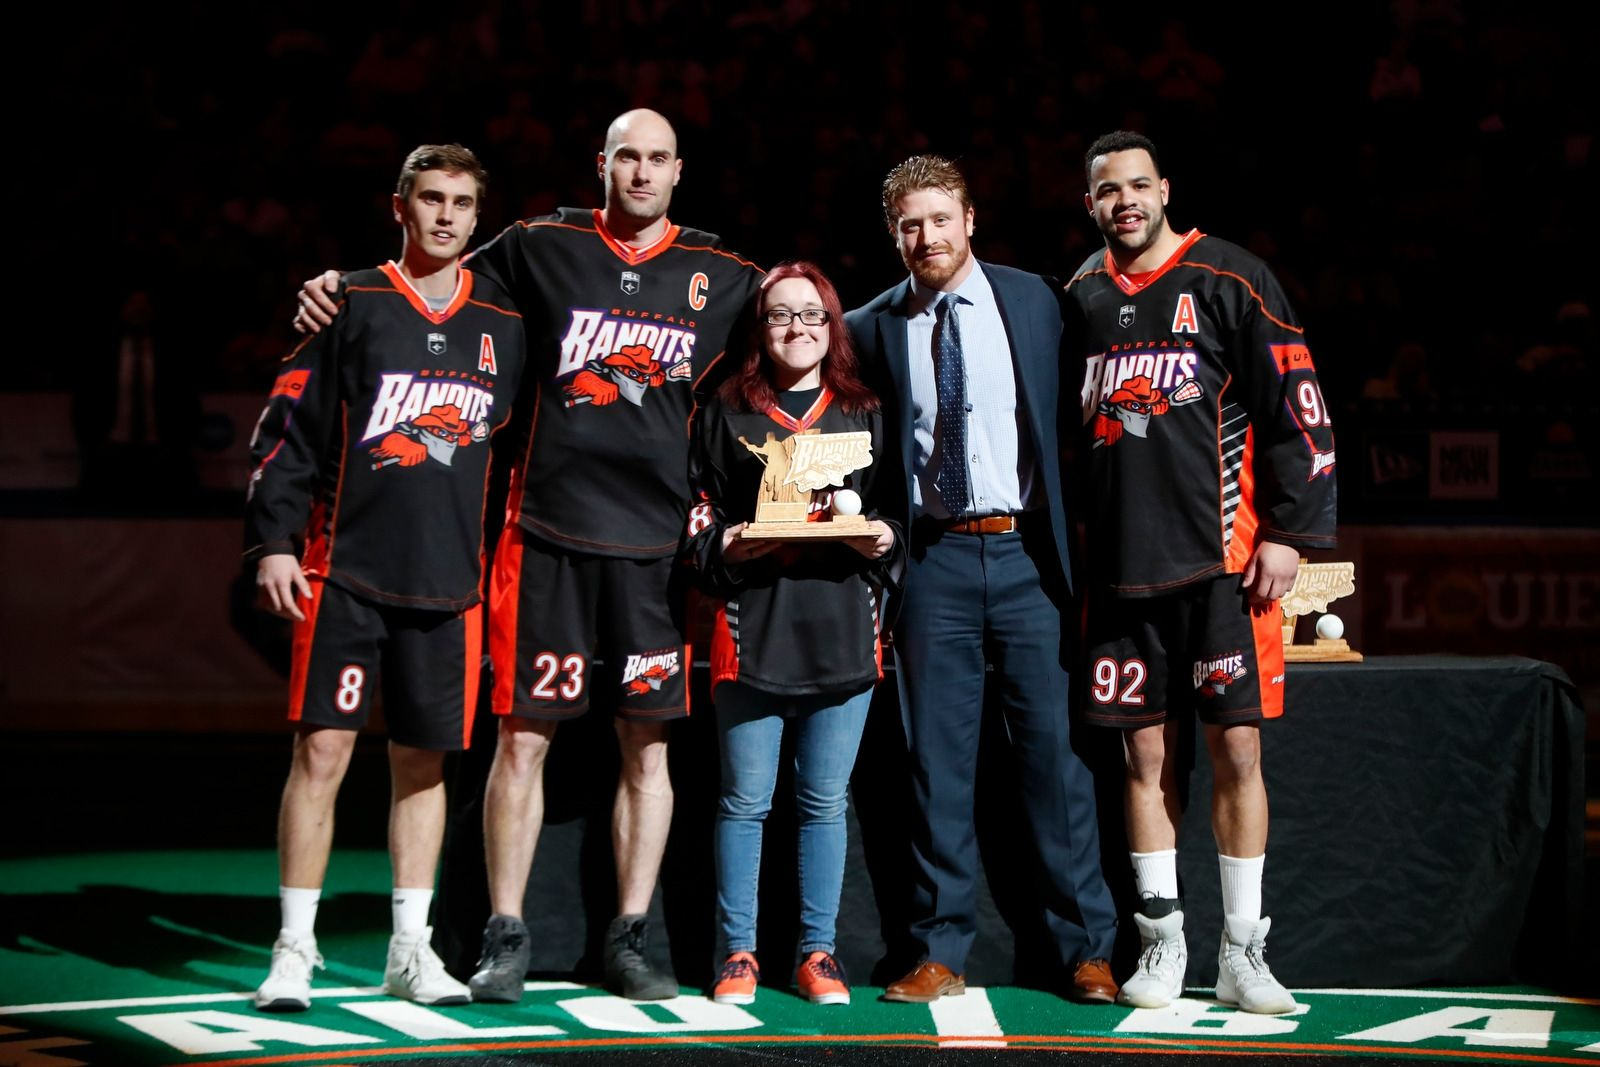 Buffalo Bandits fan of the year Jessica Nowak is honored prior to playing the Rochester Knighthawks at the KeyBank Center on Saturday April 28, 2018.